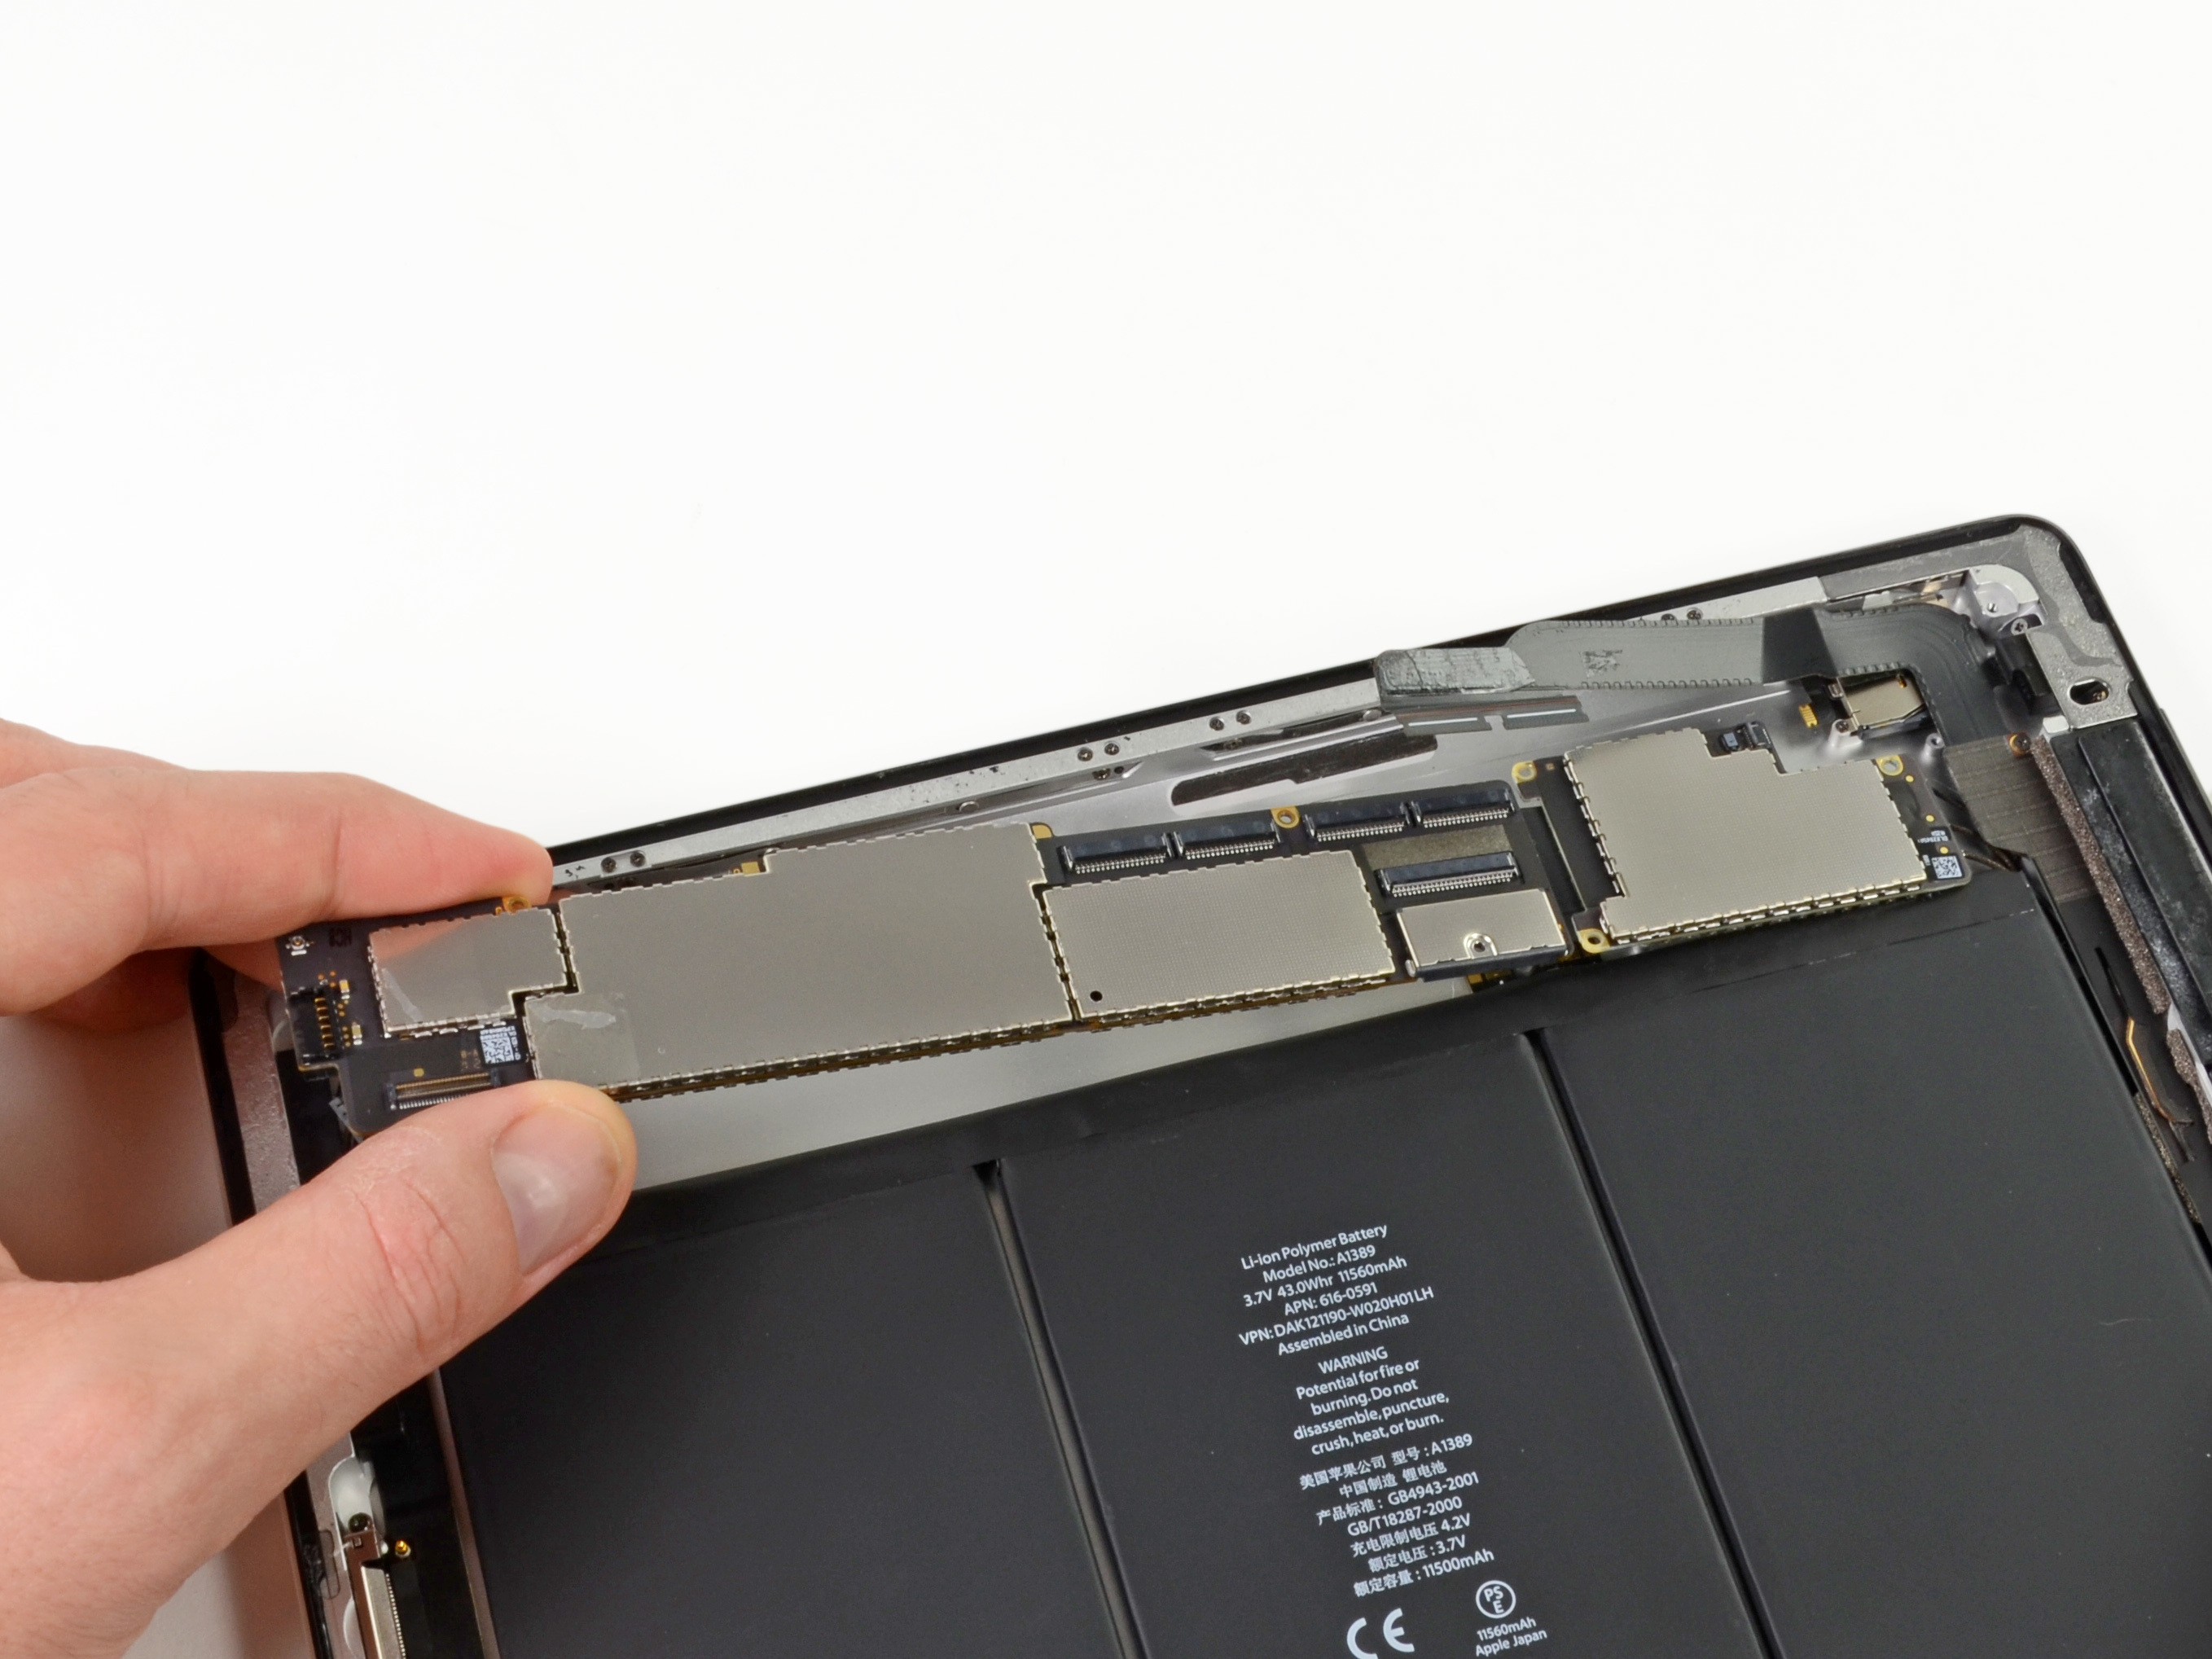 Ipad 3 4g Logic Board Replacement Ifixit Repair Guide 2 Diagram